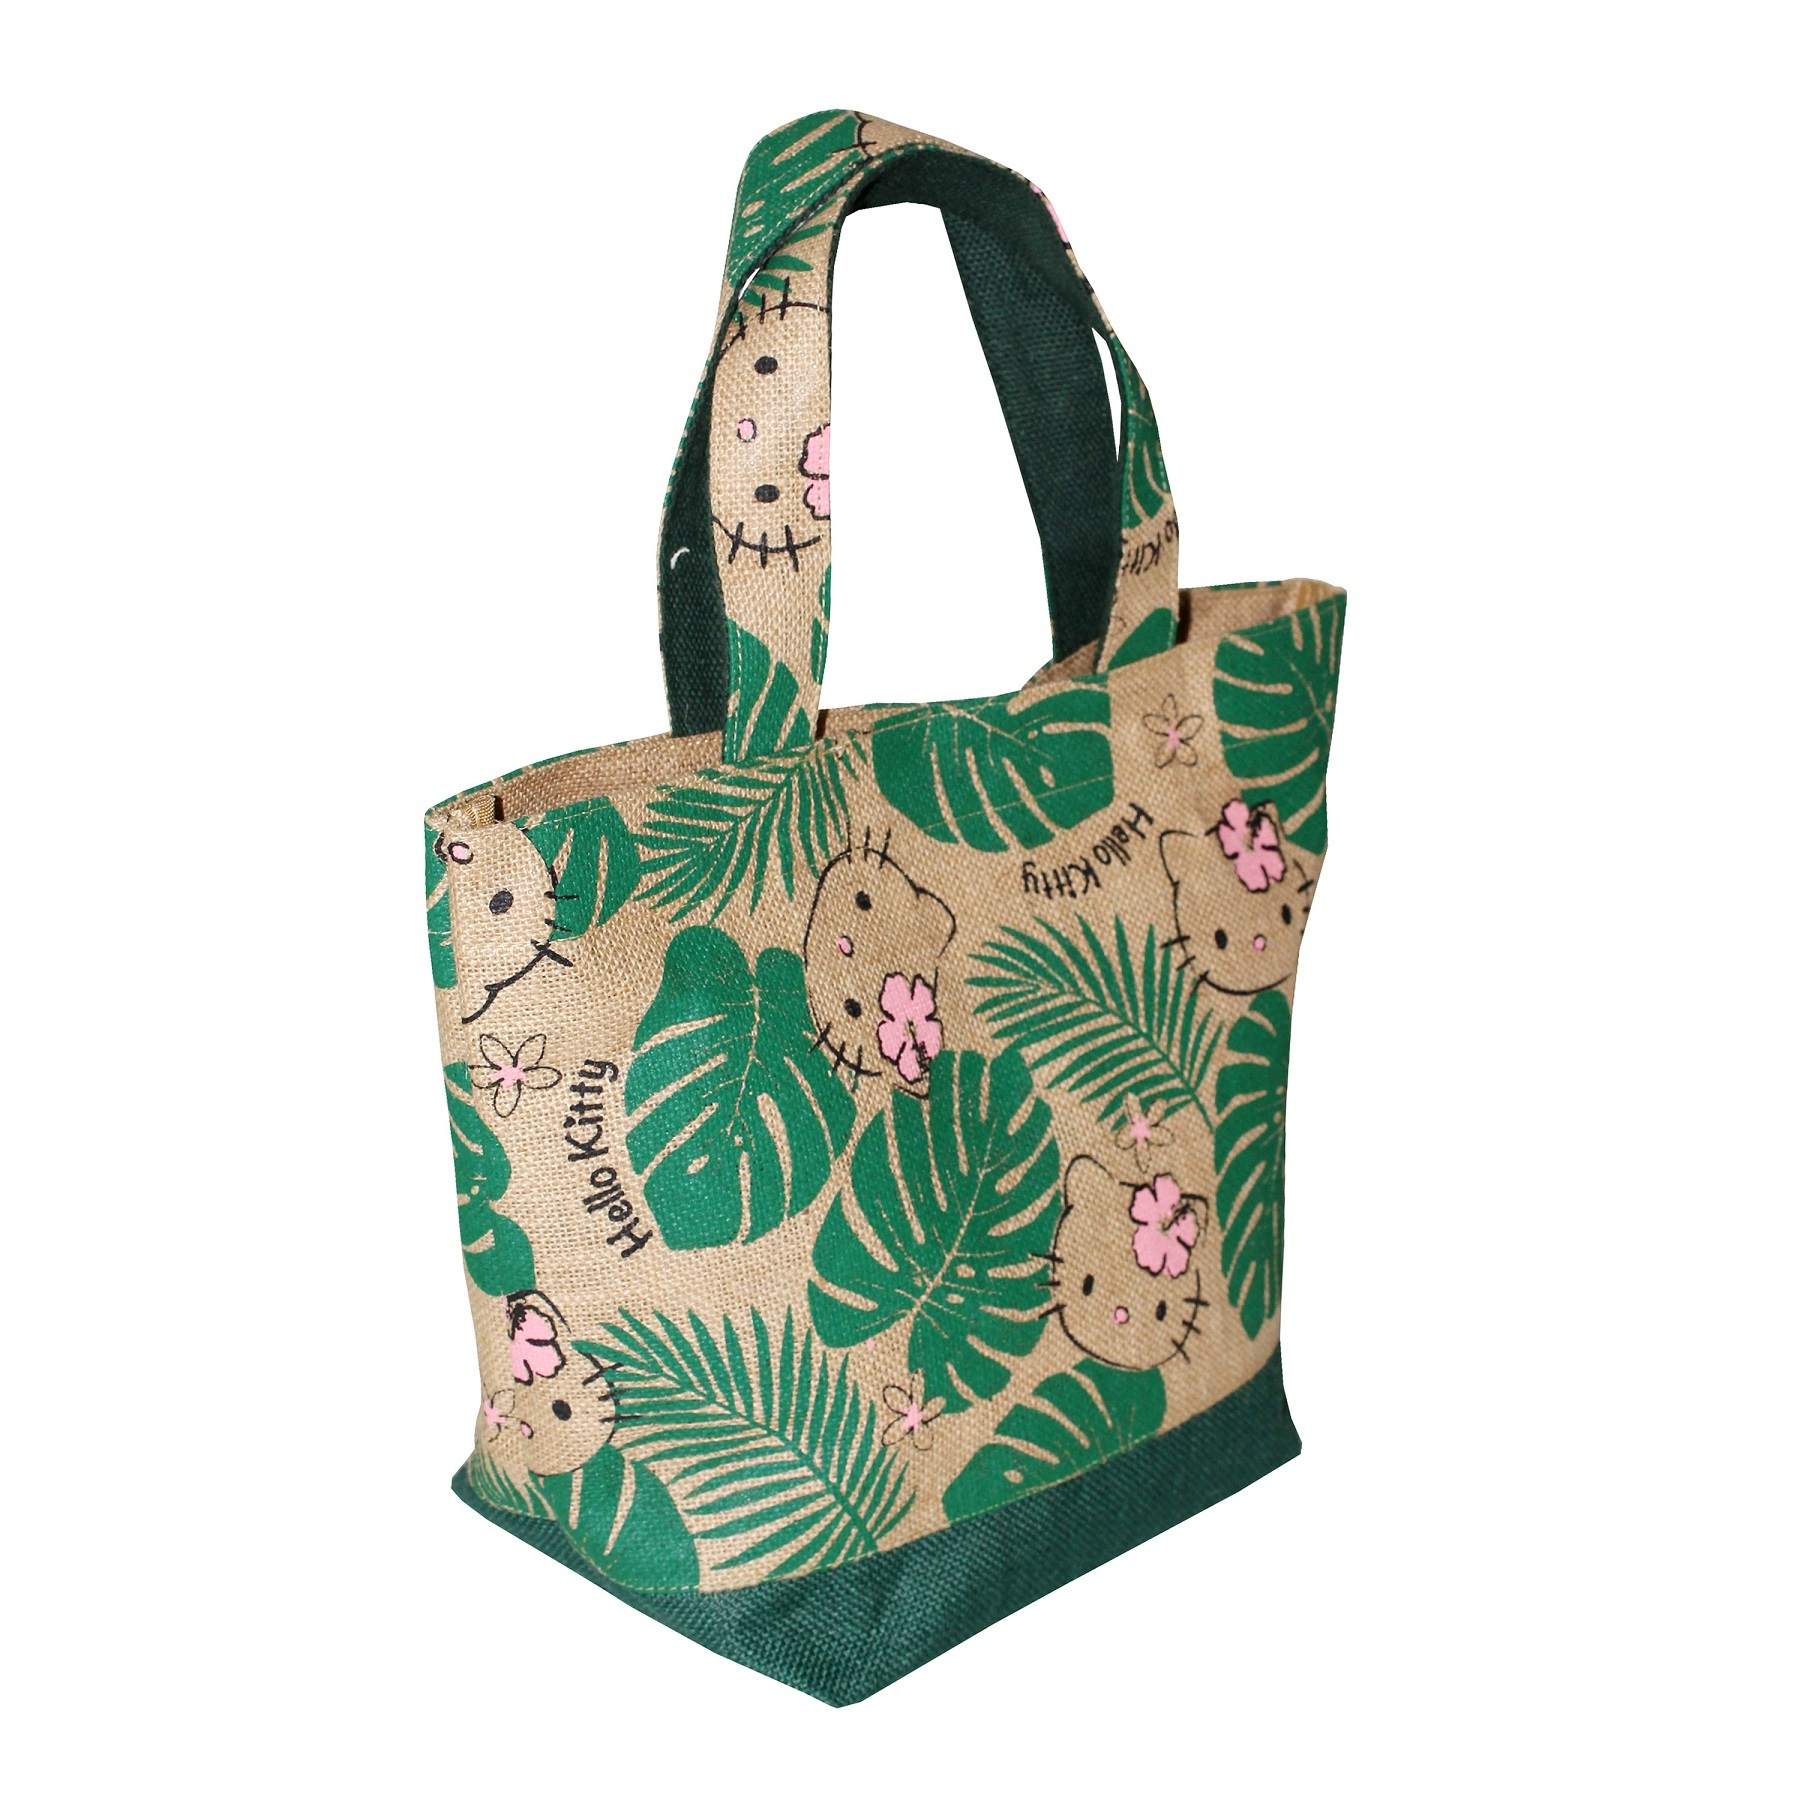 Pp Laminated Jute Bag With Jute Handle & Hanging Zip Pocket